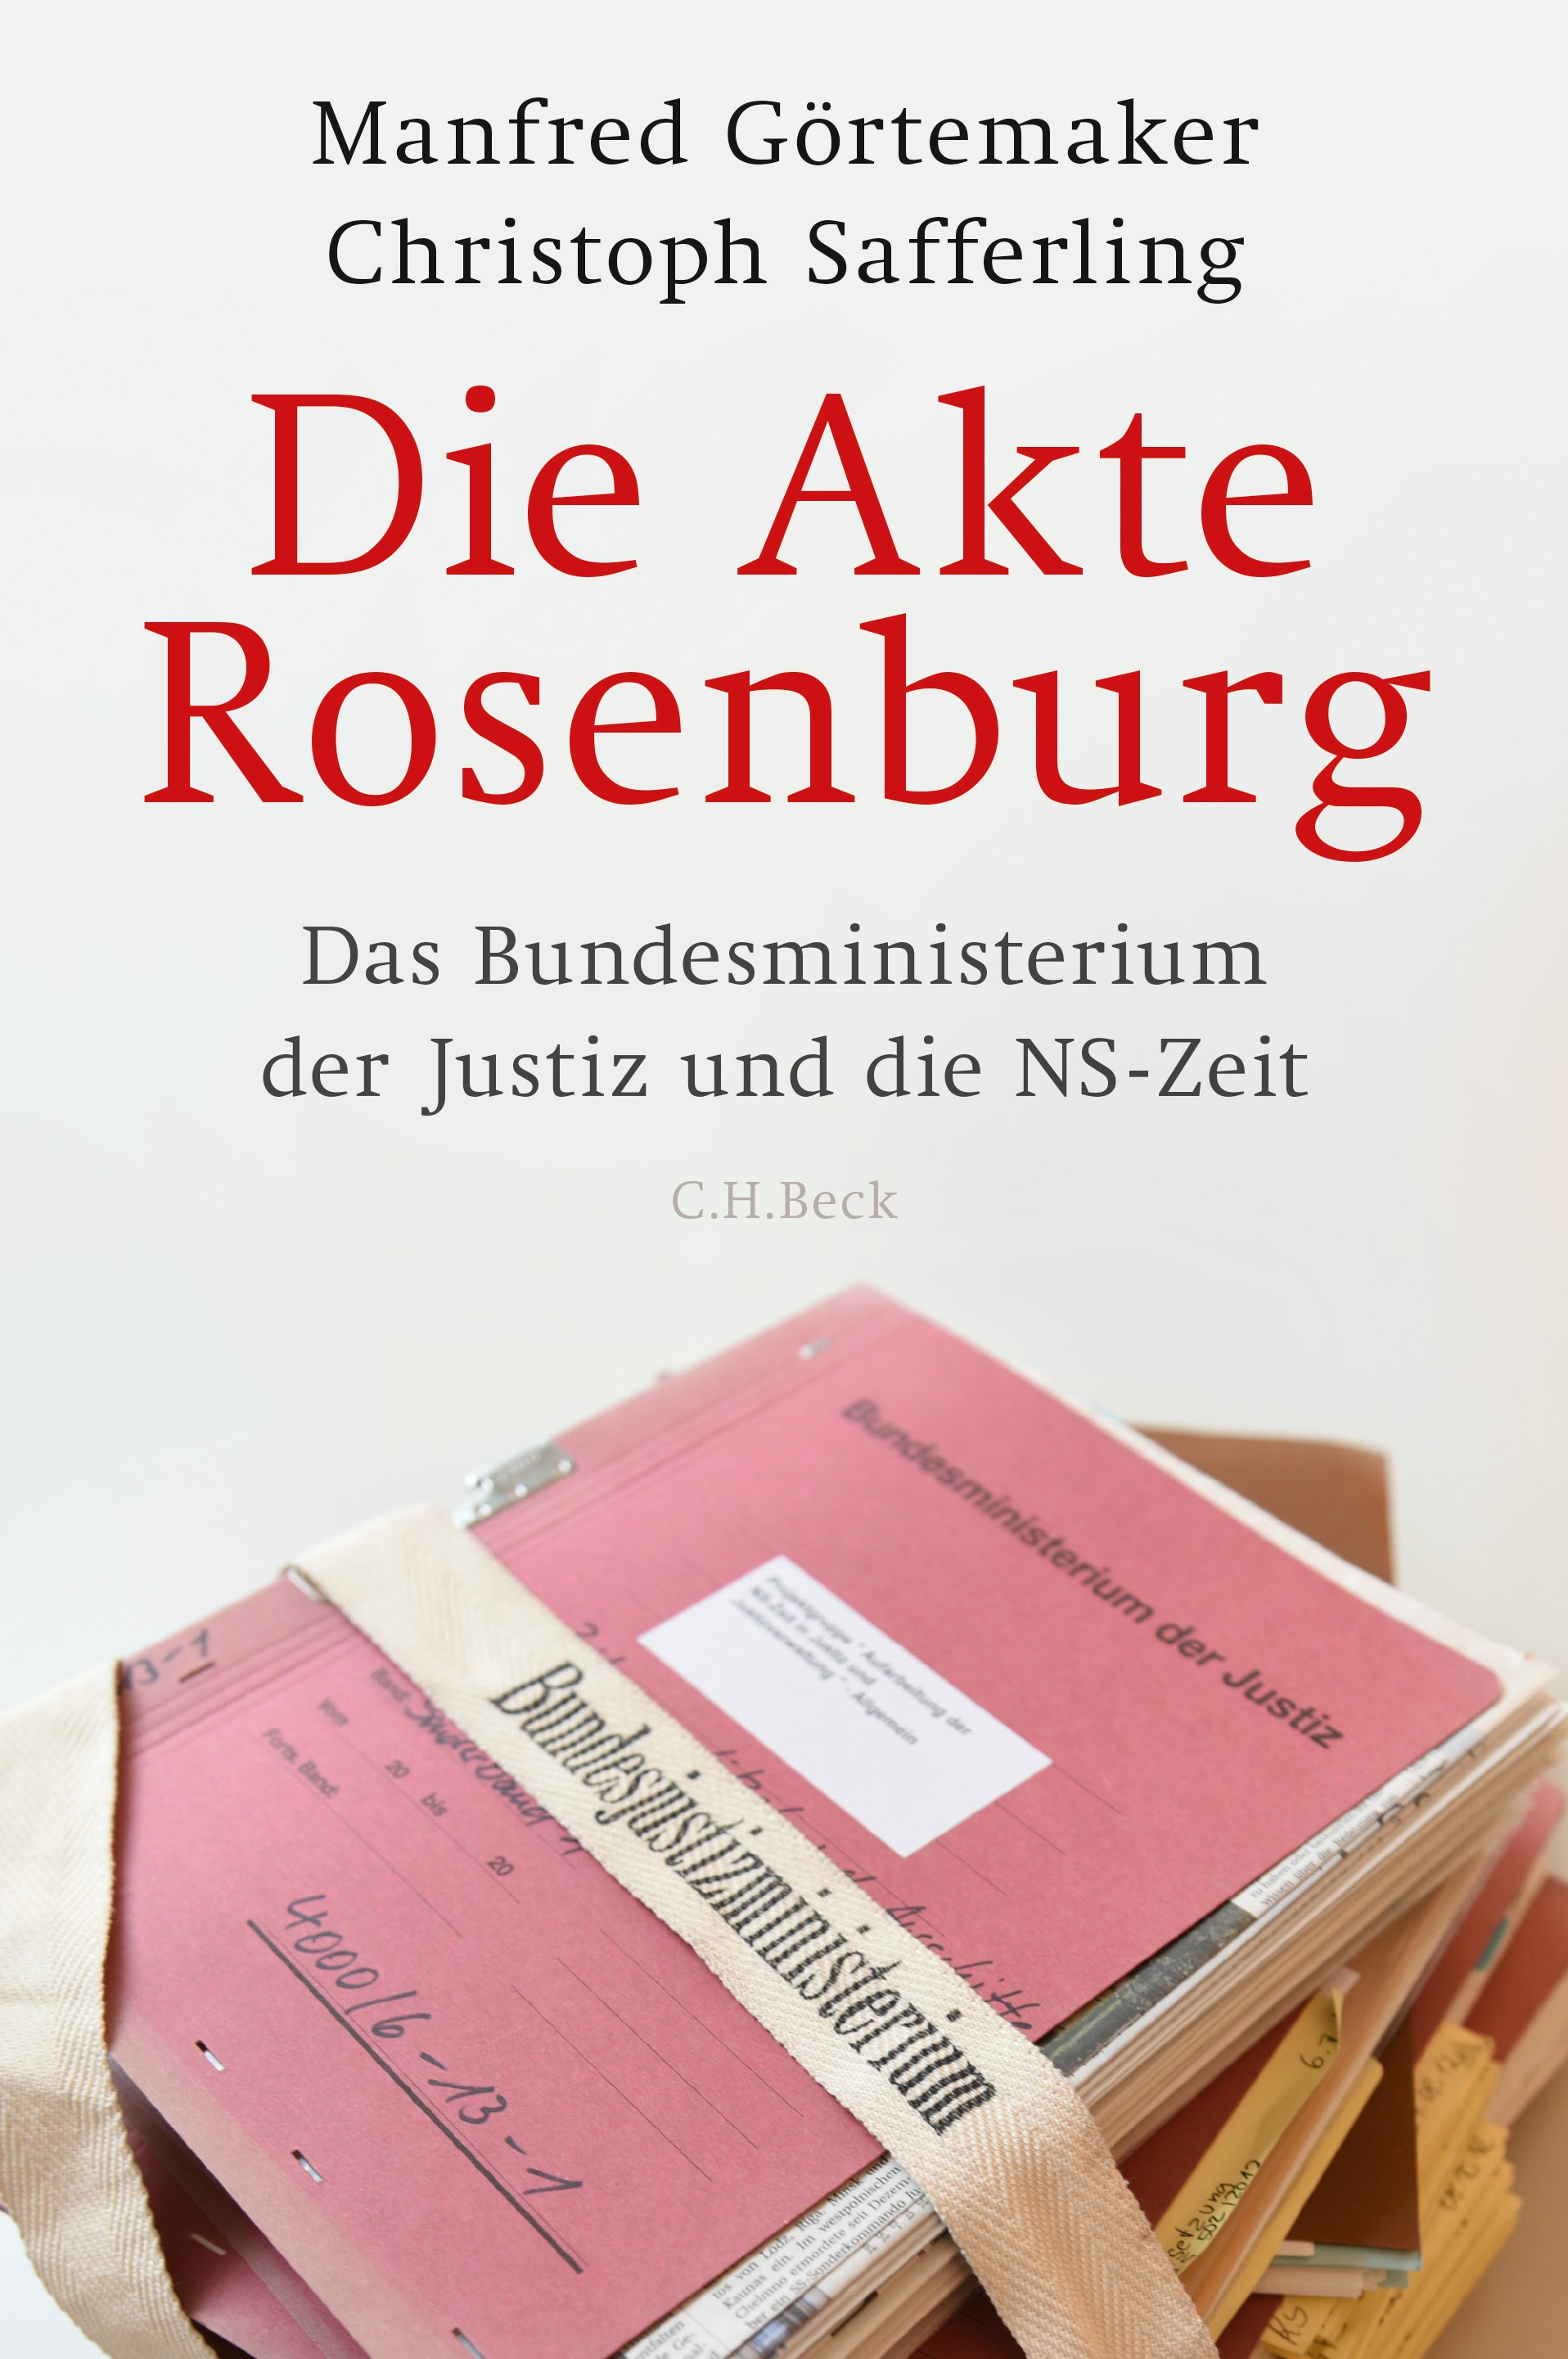 Die Akte Rosenburg | Görtemaker, Manfred / Safferling, Christoph | 2. Auflage, 2016 | Buch (Cover)